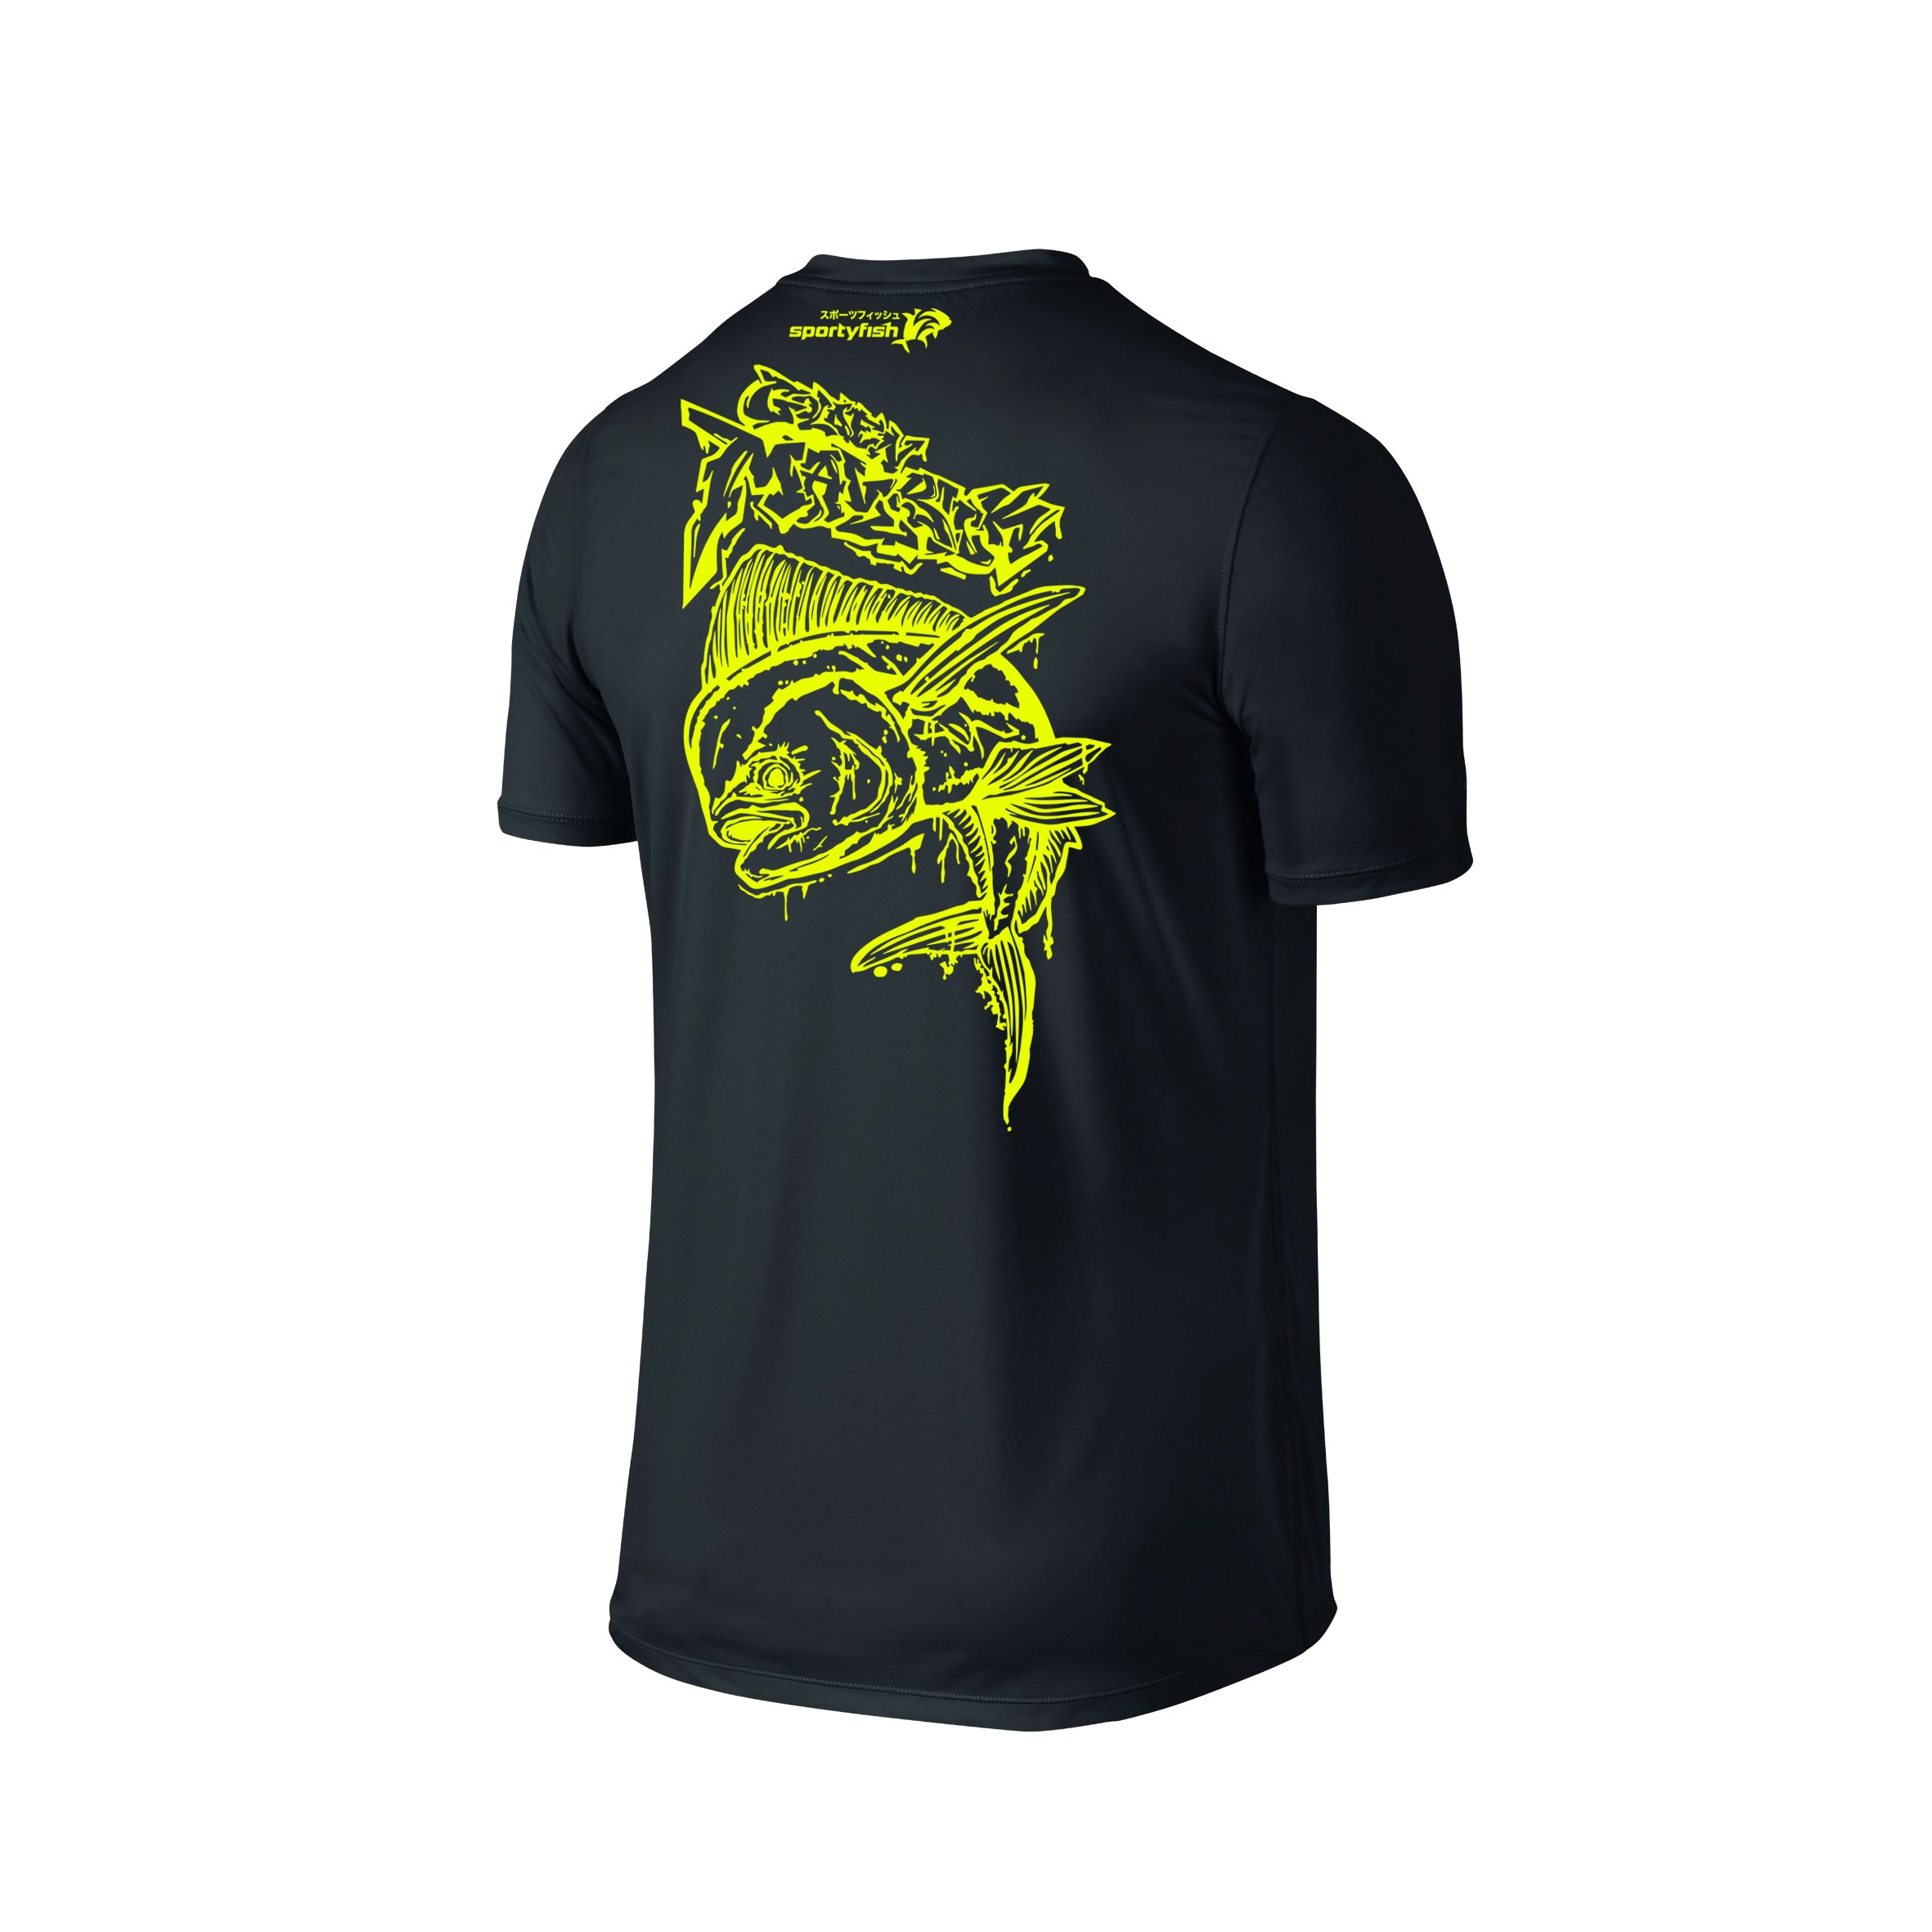 Wildstyle Graffiti Series Black T-shirt(back view)Neon Yellow: Mahi-mahi